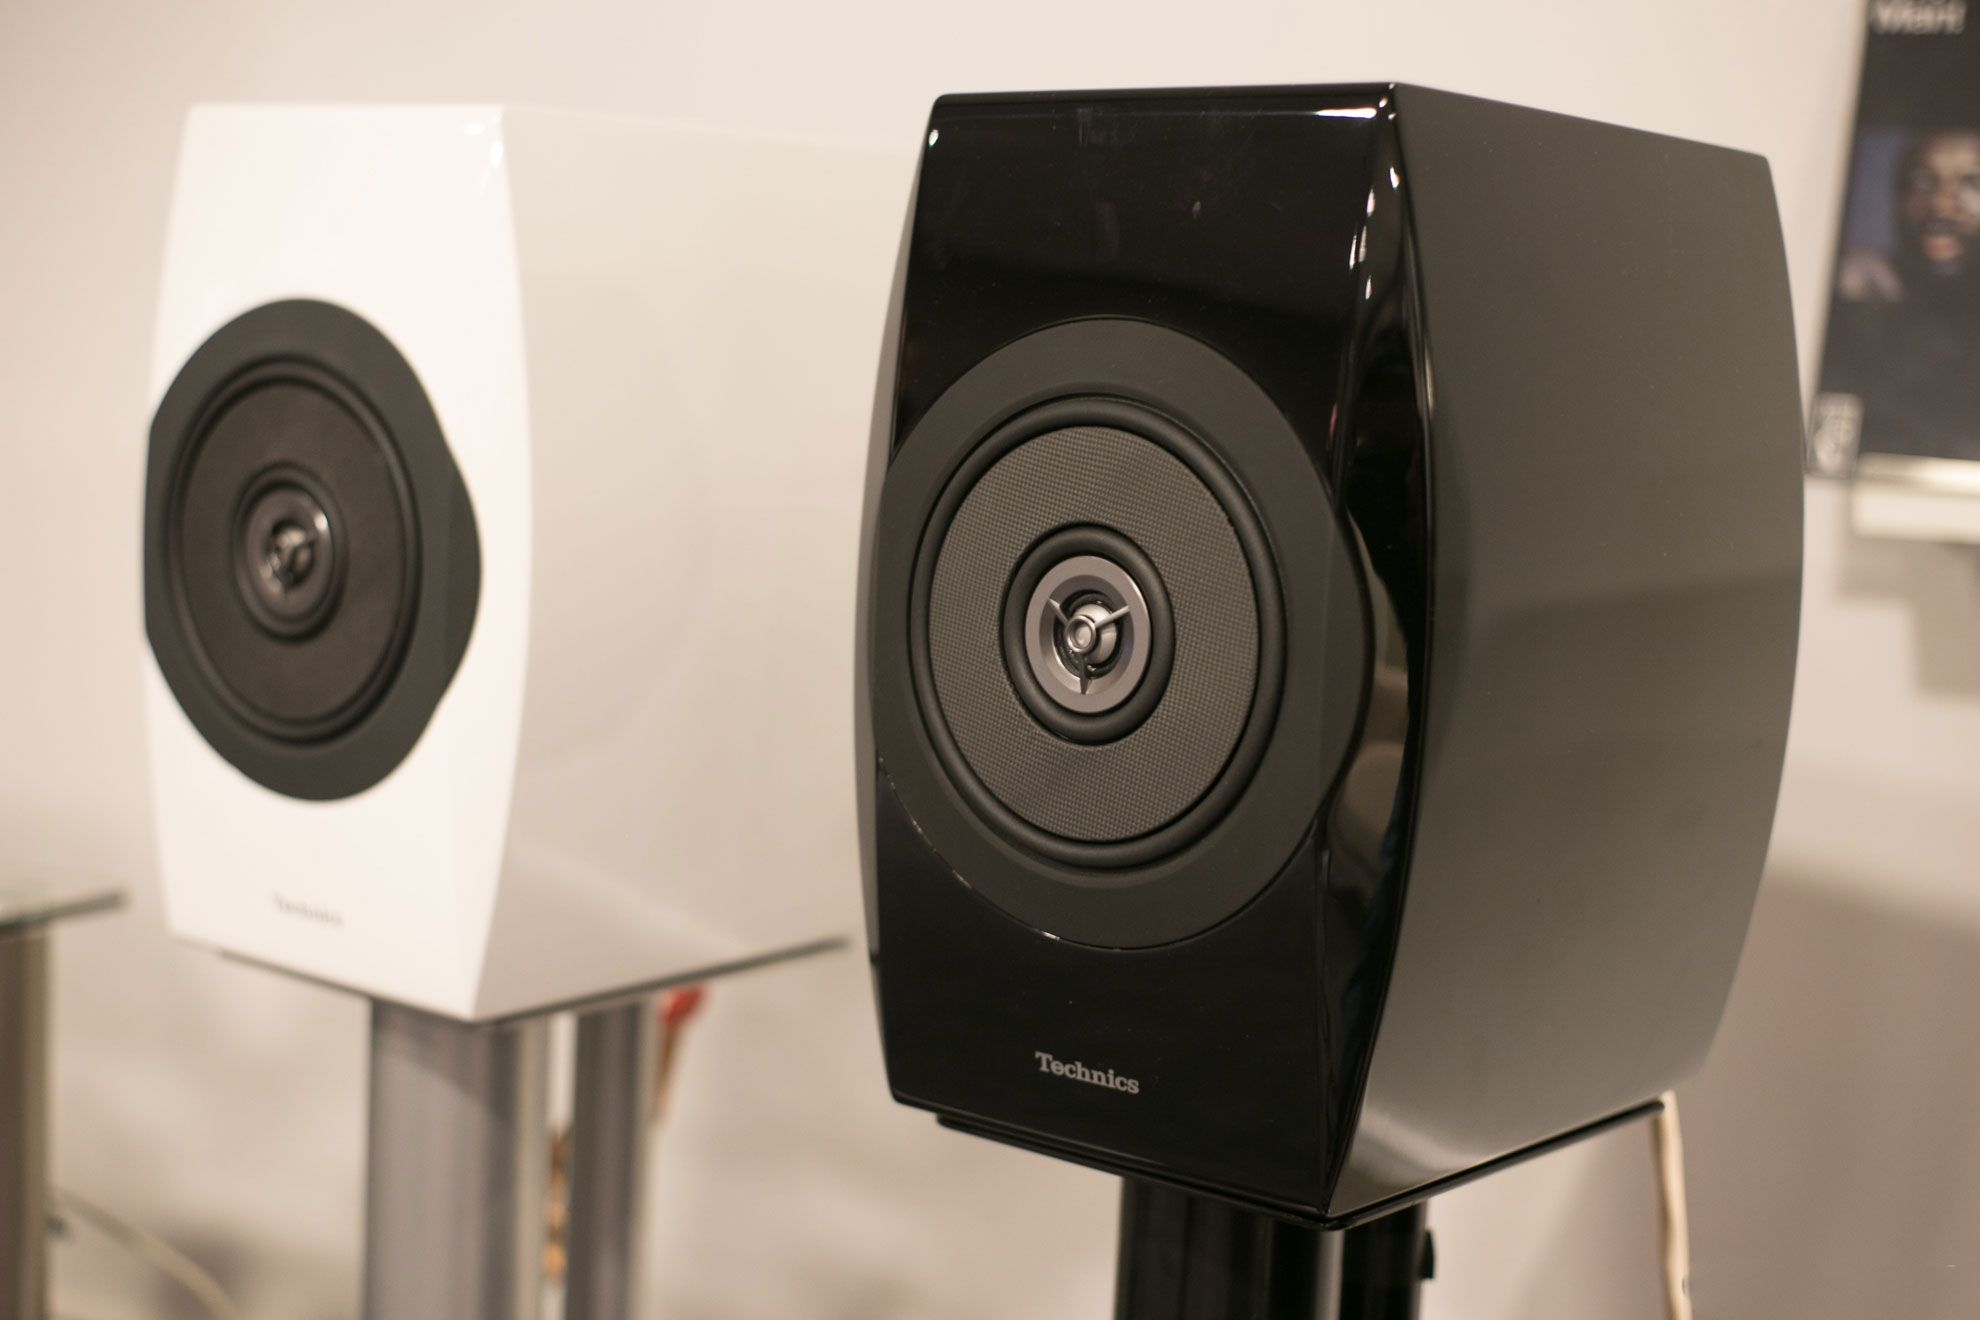 Technics speakers in black and white finish